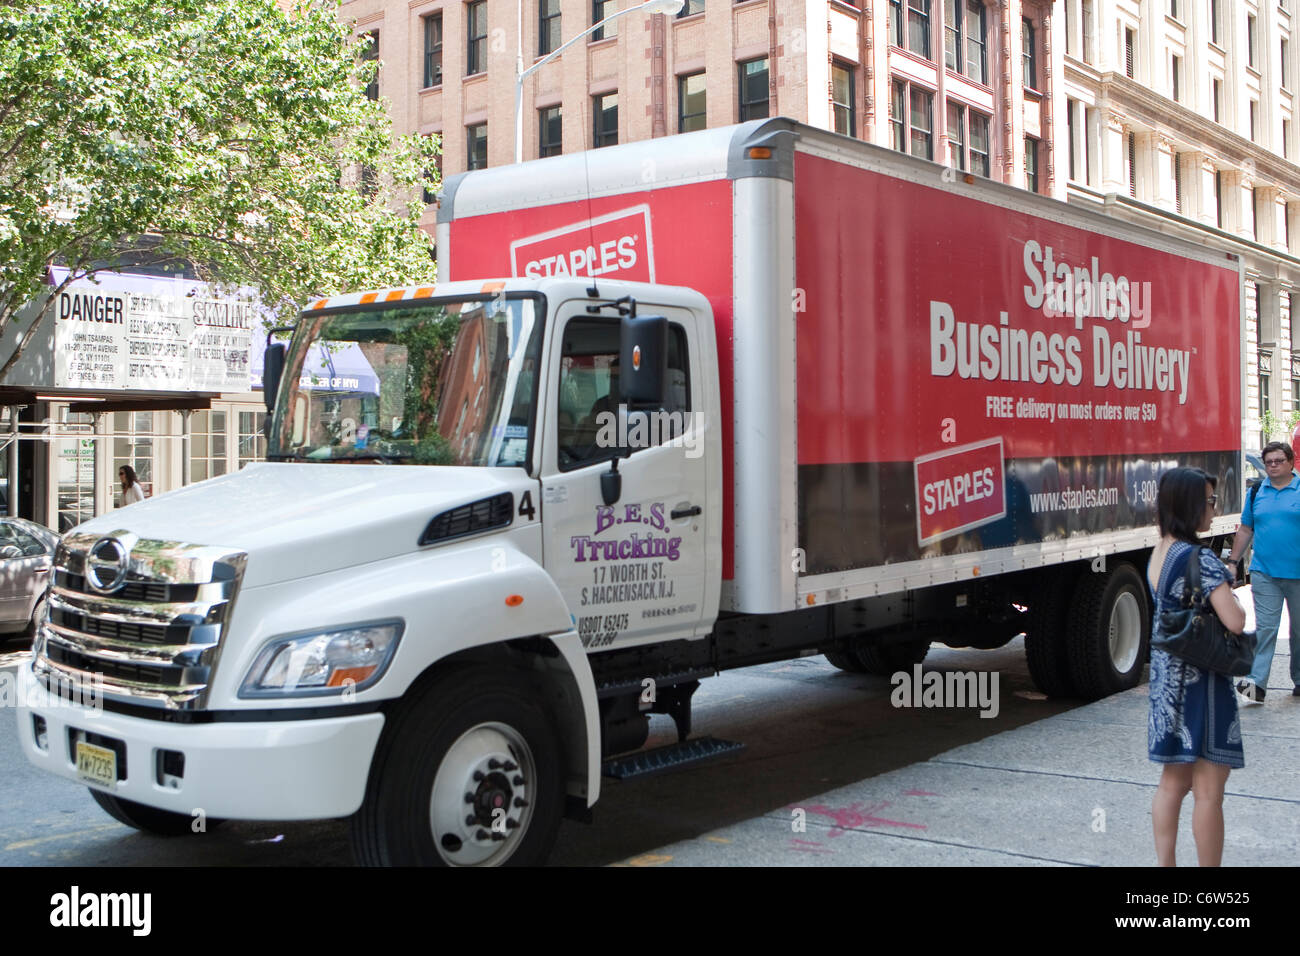 A Staples delivery truck is pictured in New York City, NY Thursday August 4, 2011. - Stock Image